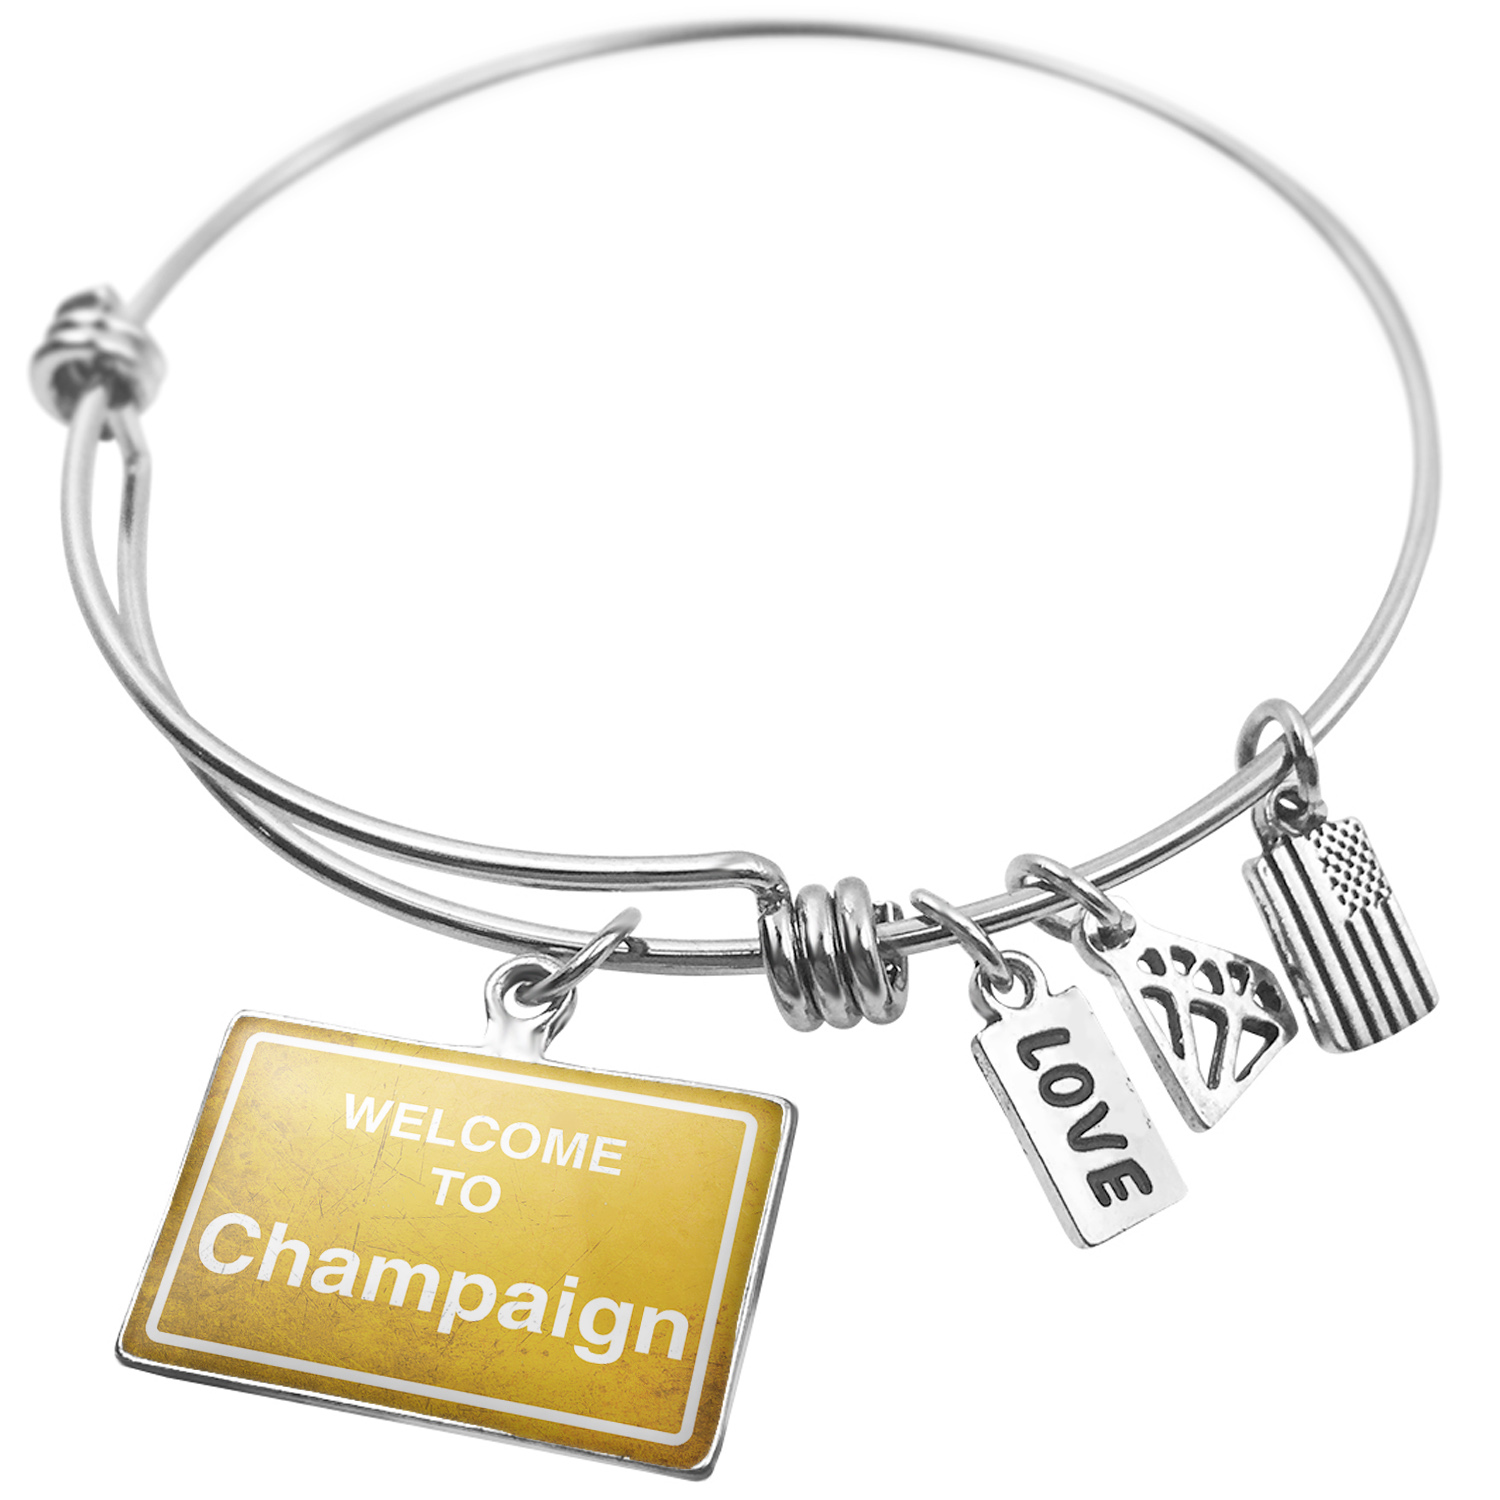 Expandable Wire Bangle Bracelet Yellow Road Sign Welcome To Champaign - NEONBLOND